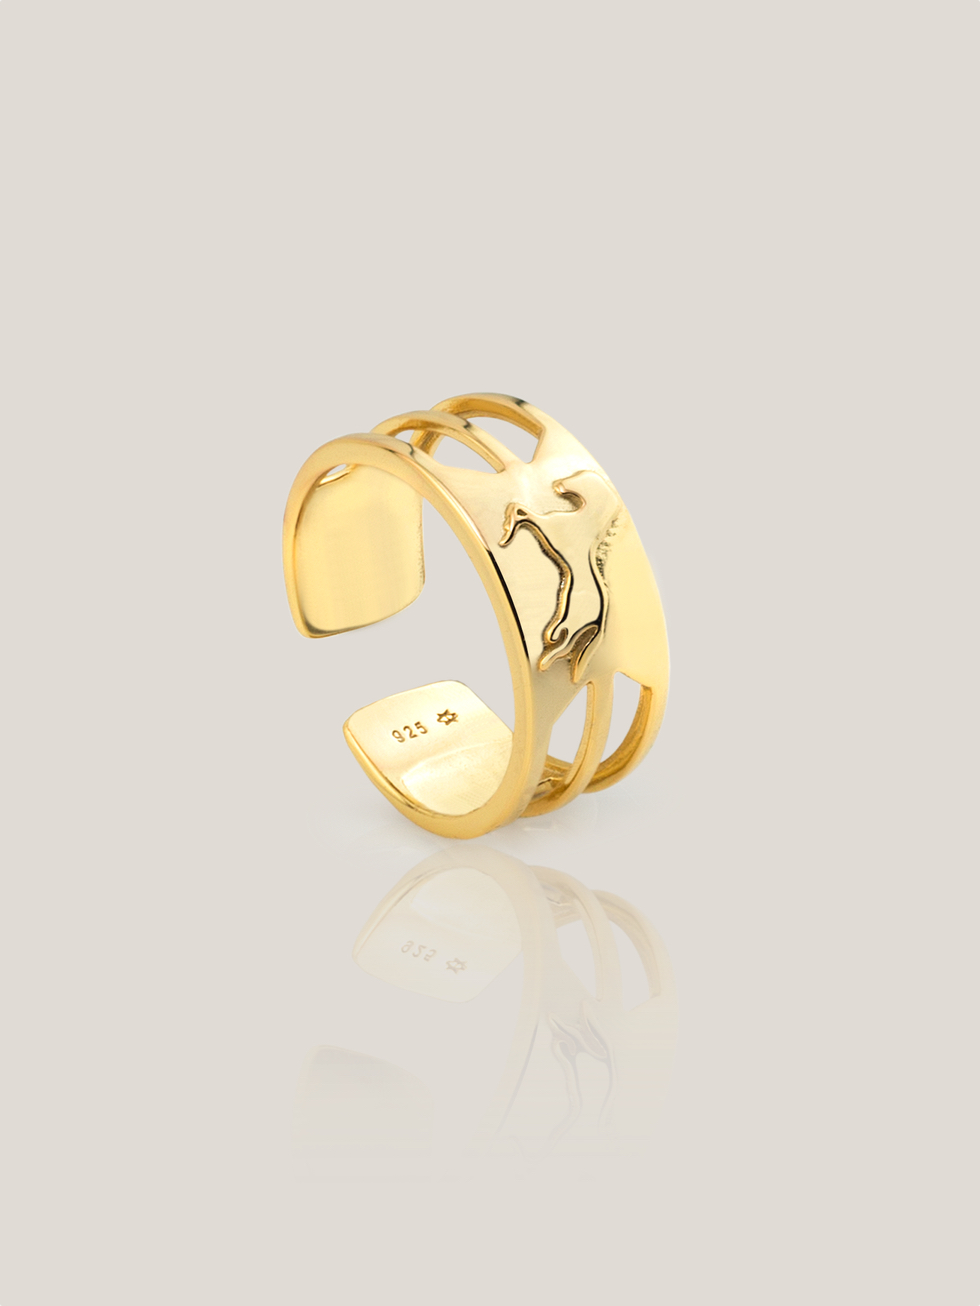 HORSE gold ring